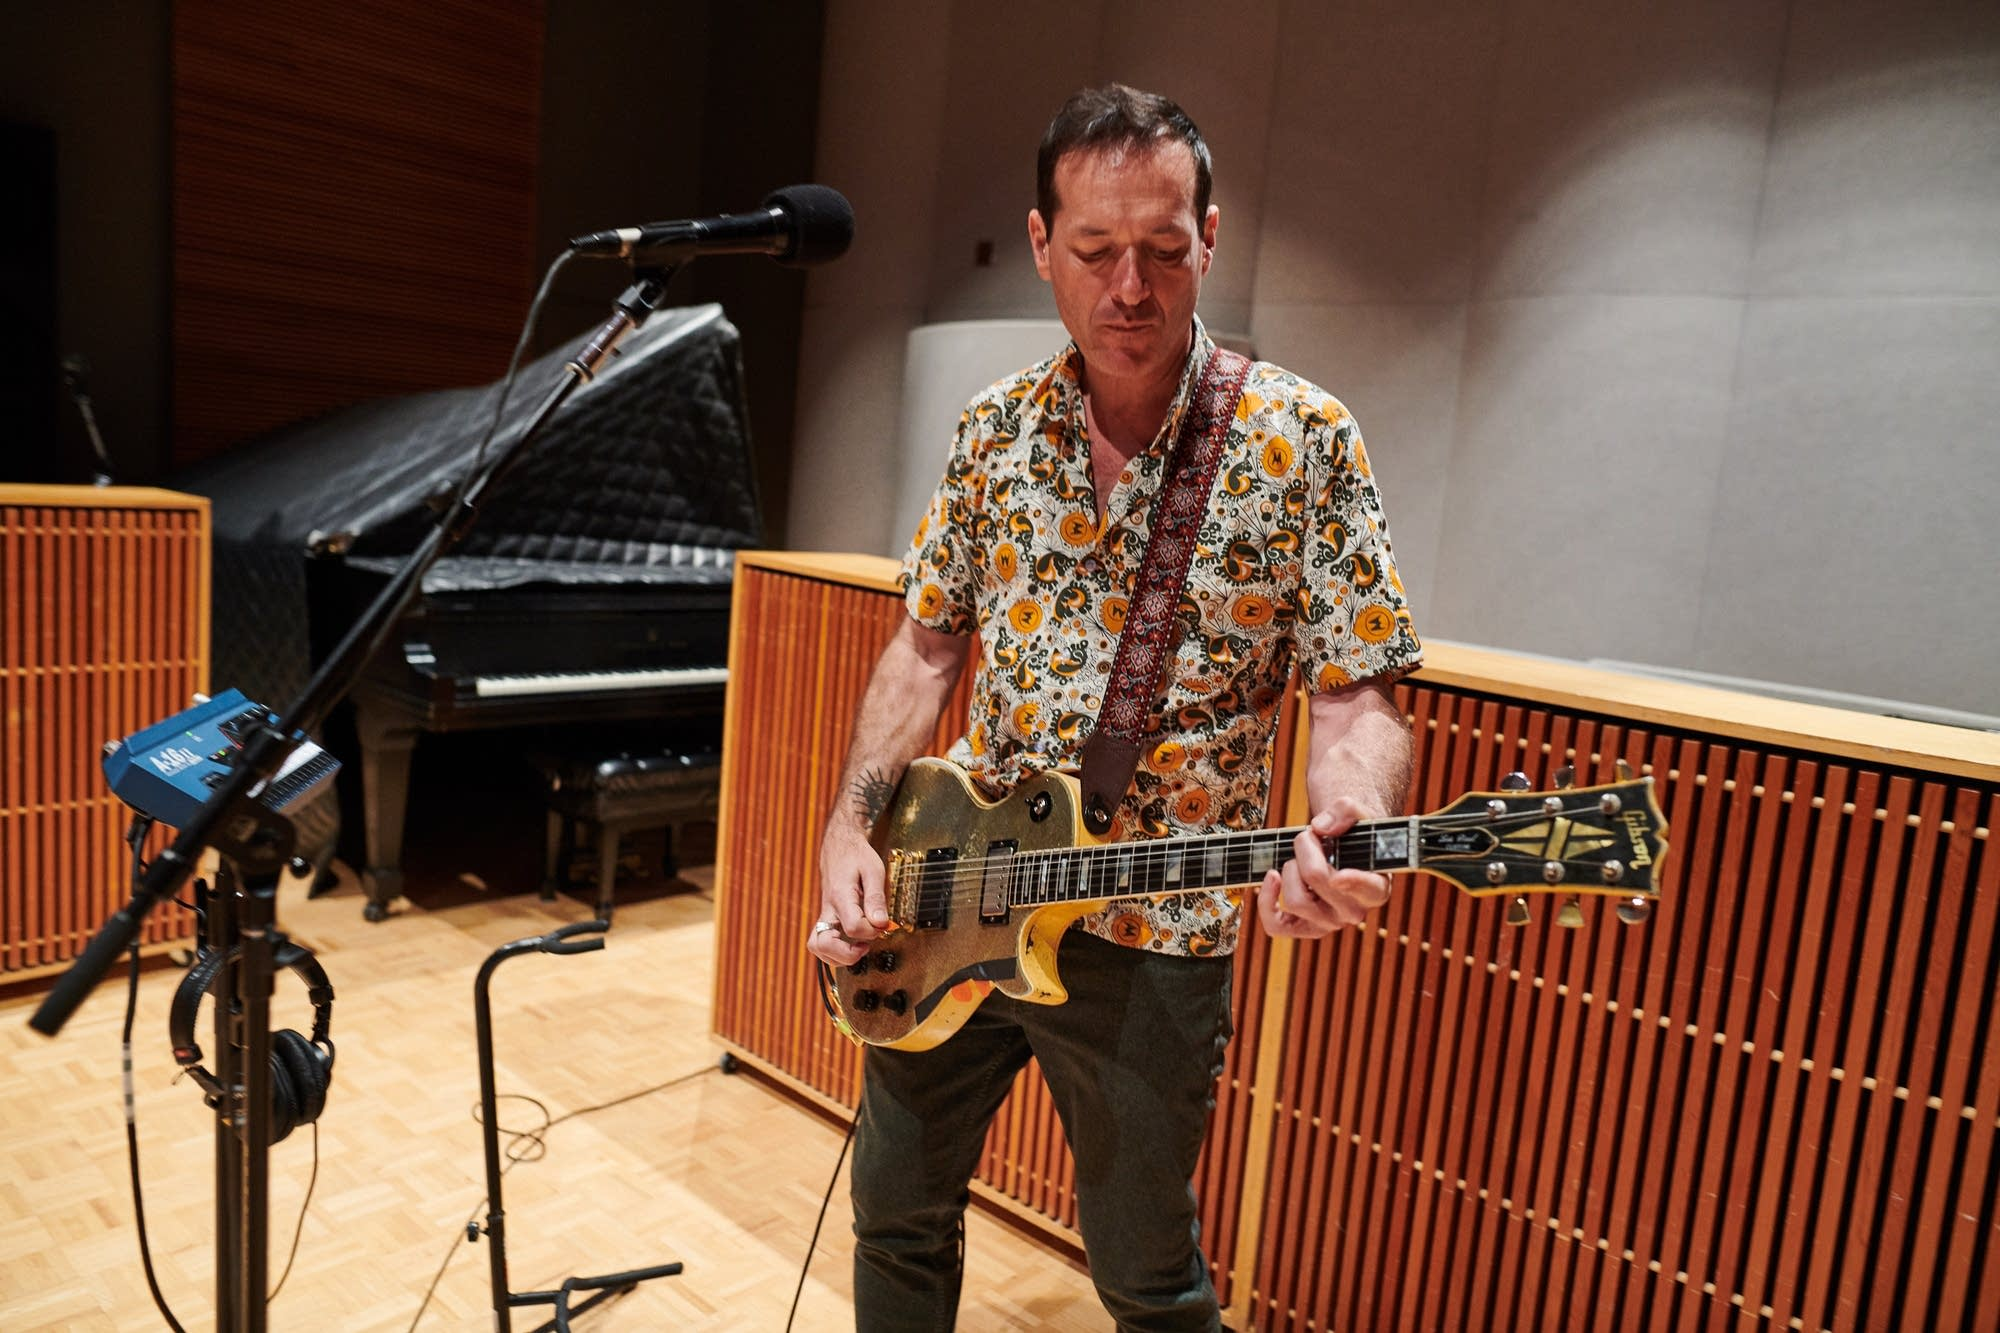 Hot Snakes perform in The Current studio